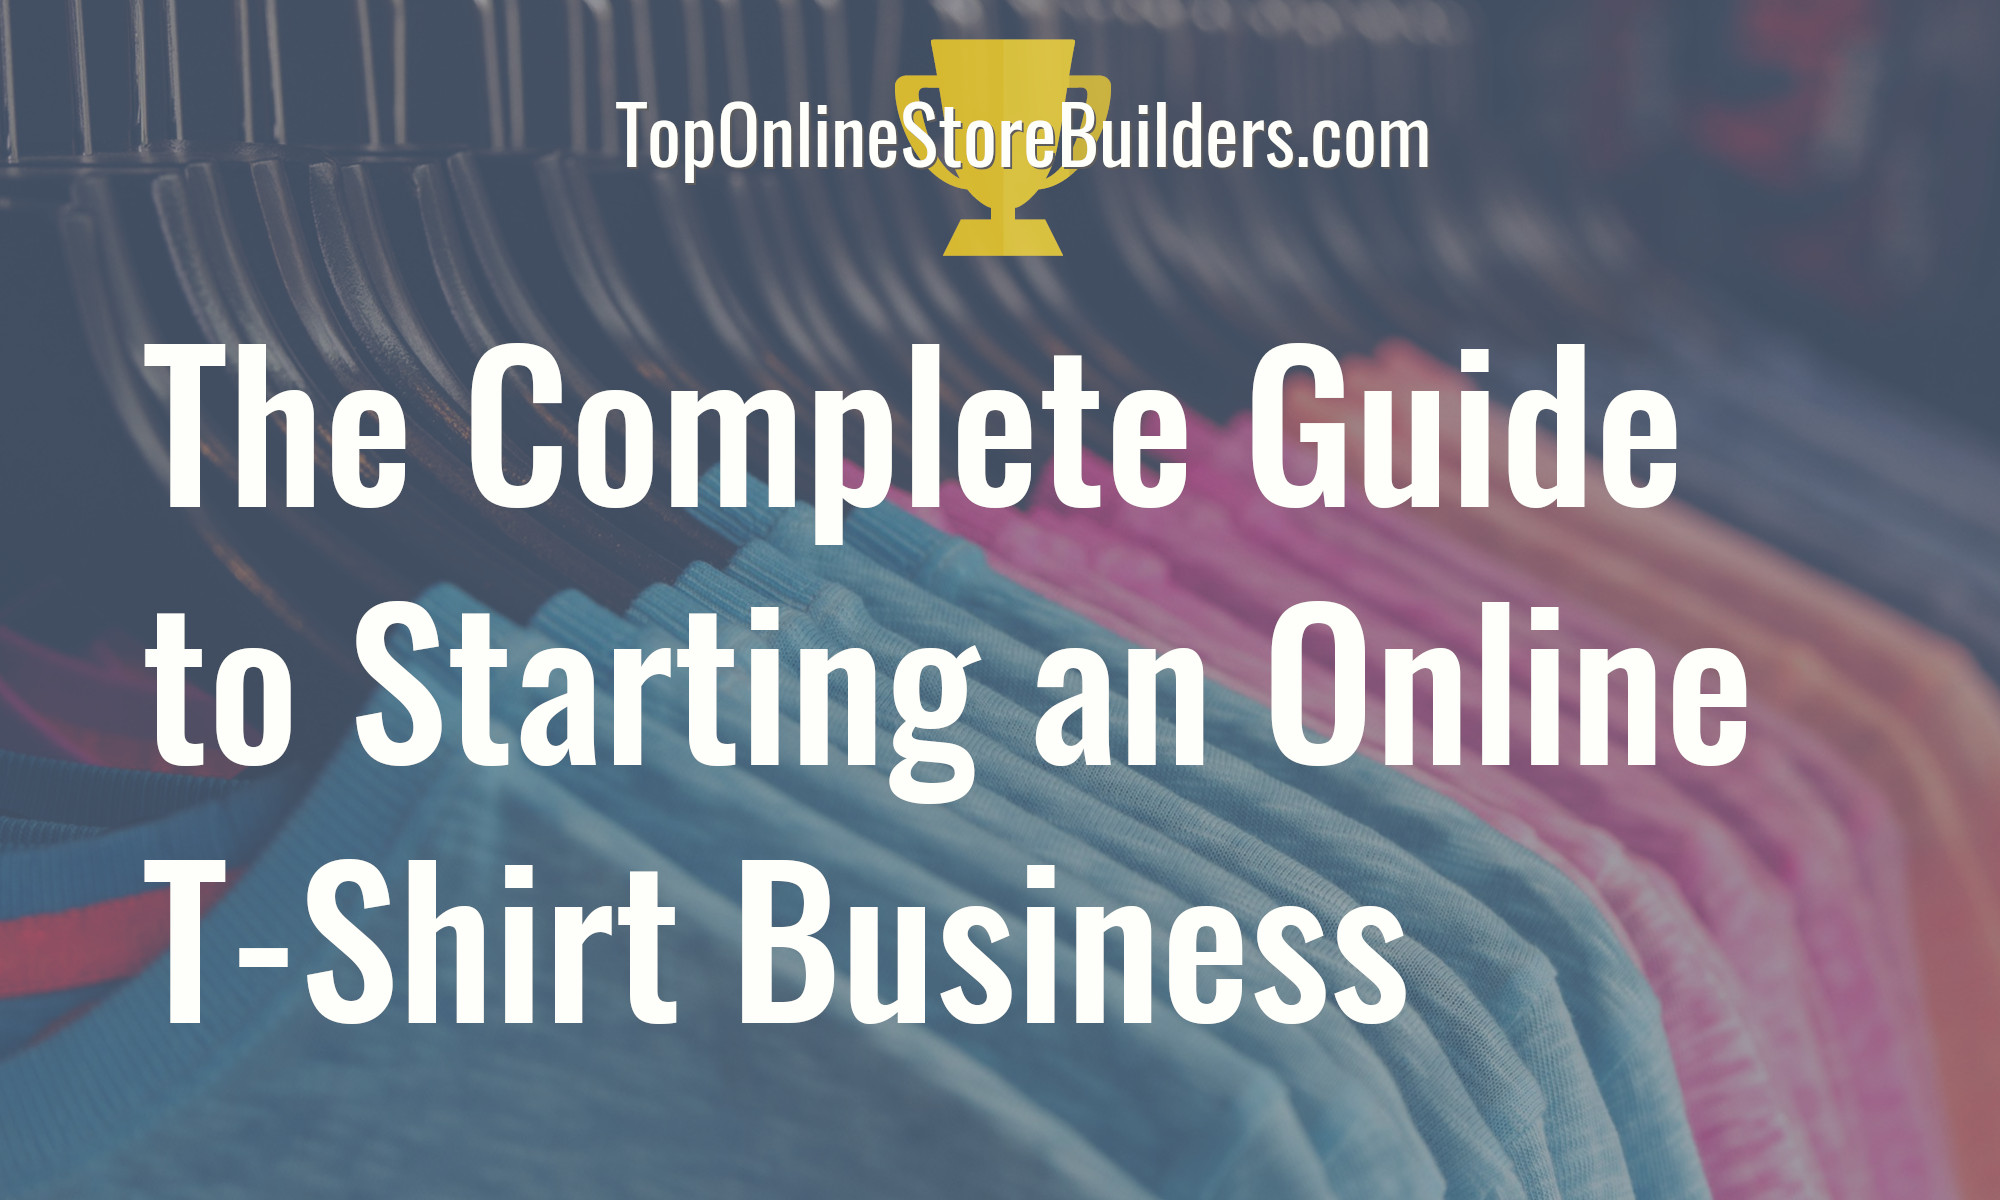 The Complete Guide to Starting an Online T-Shirt Business